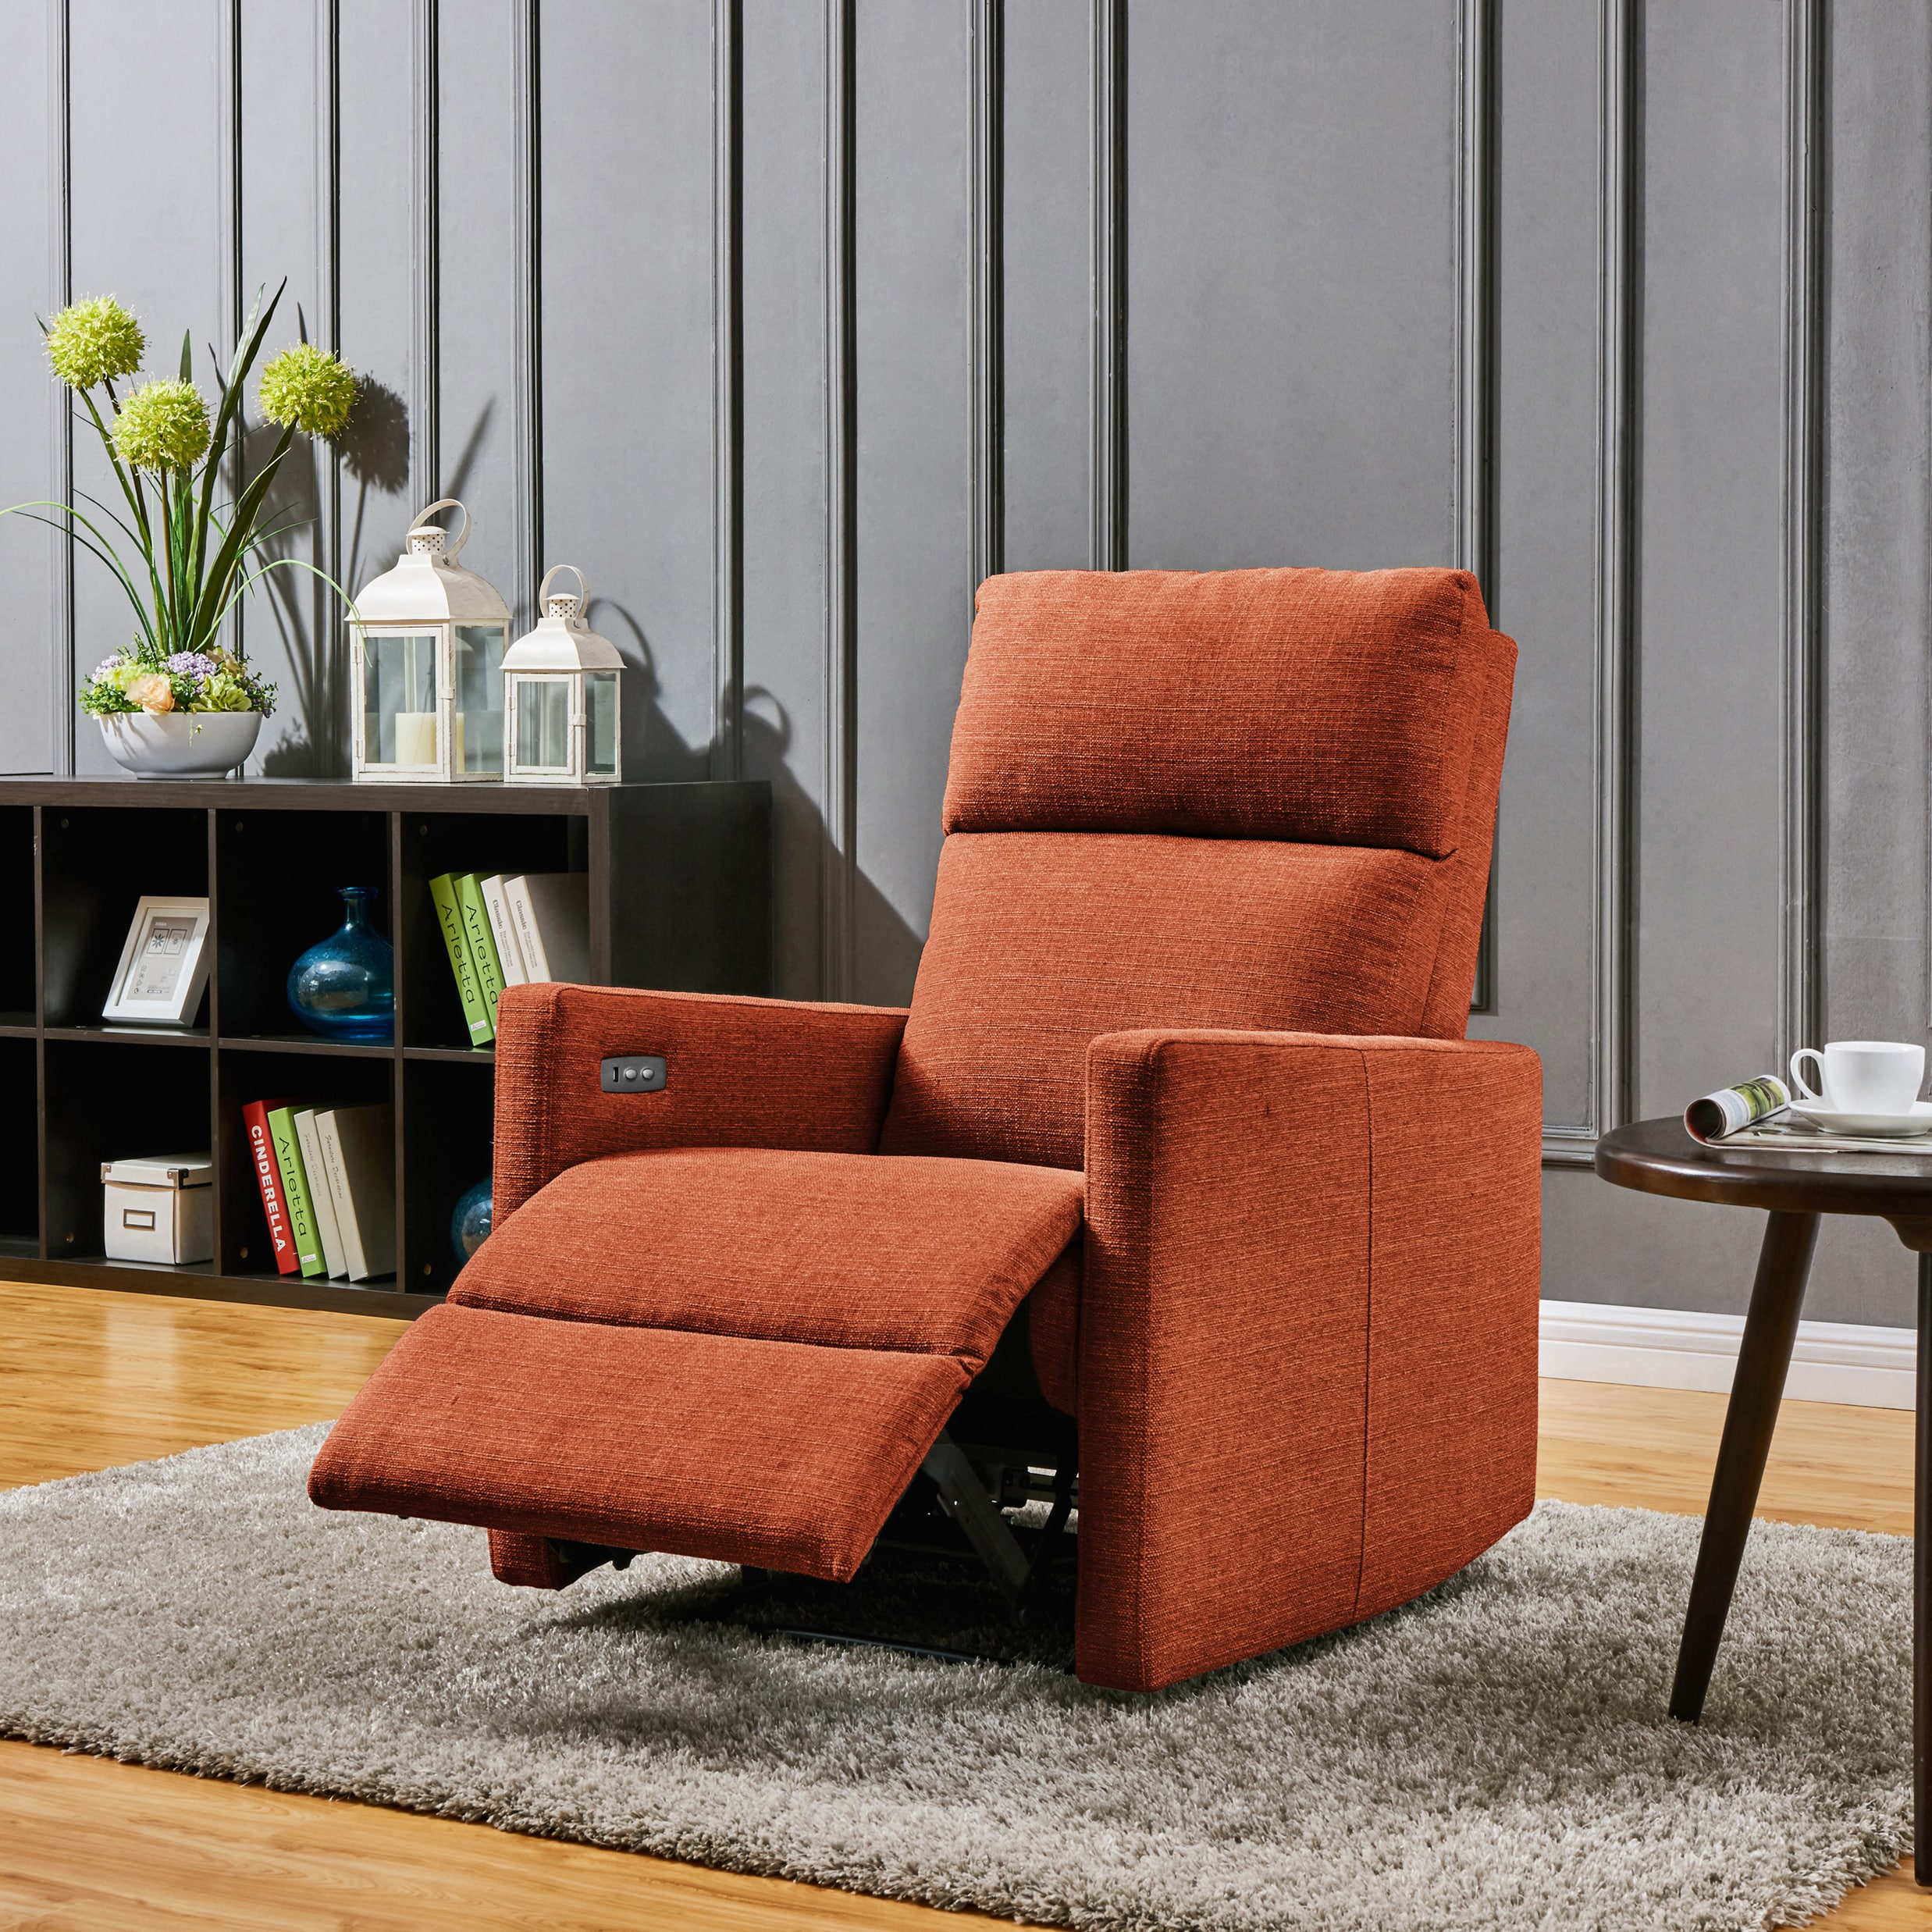 Pleasant Carson Carrington Skorping Orange Power Wall Hugger Recliner Chair With Usb Port Pabps2019 Chair Design Images Pabps2019Com